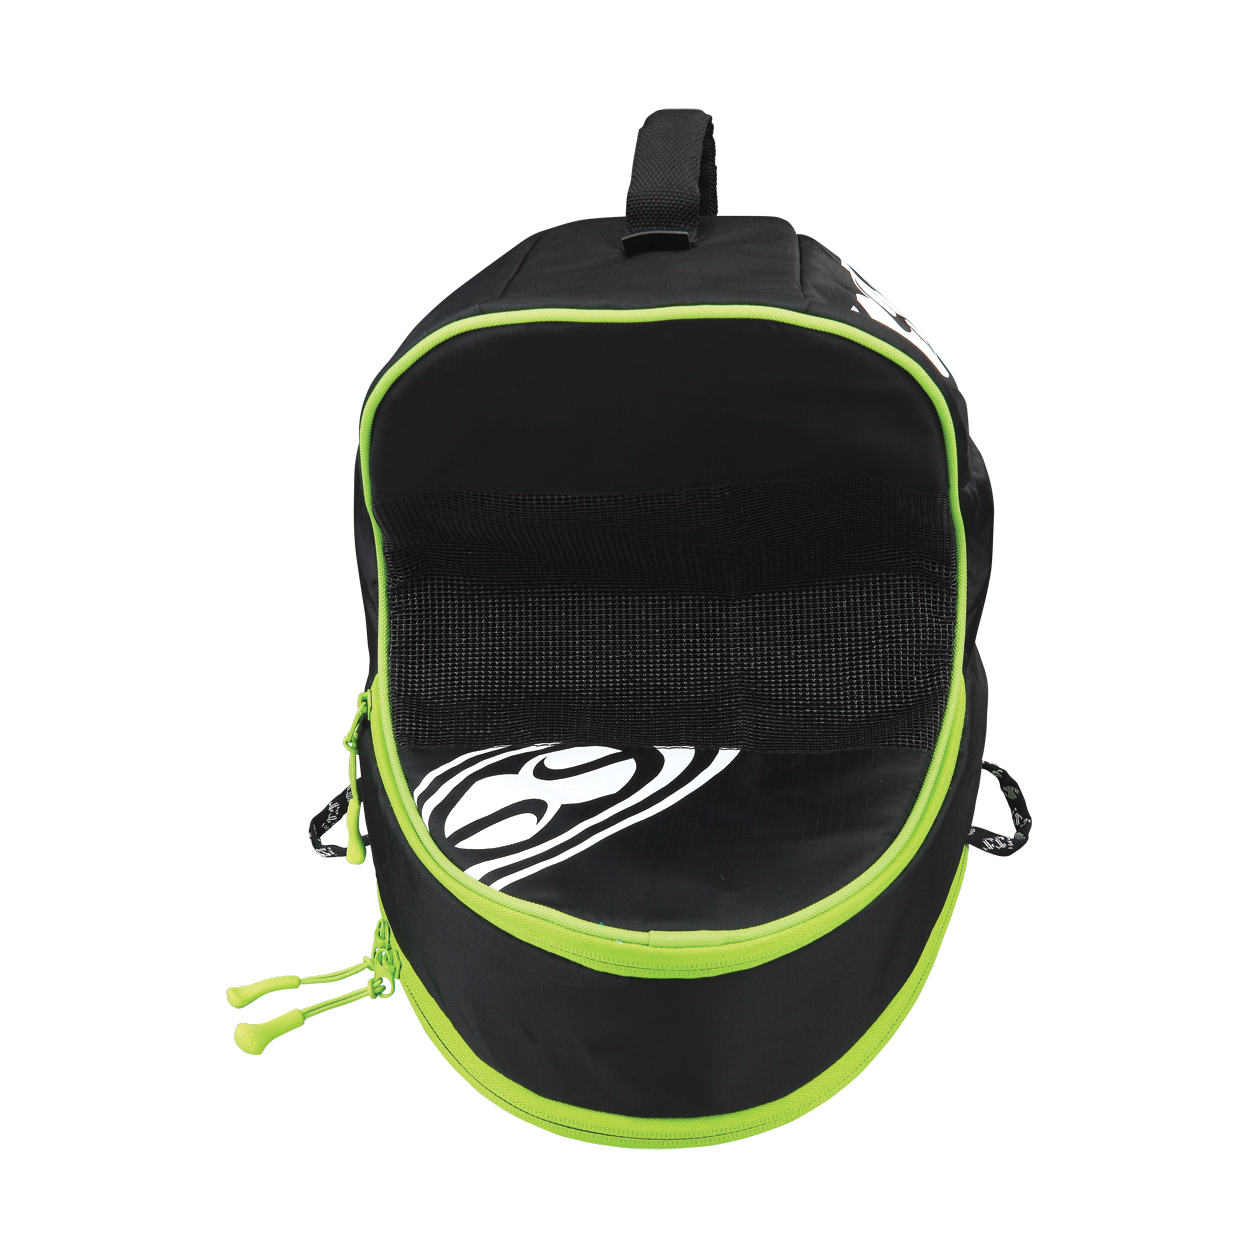 IXS Full Face Bike Helmet Bag 470-510-5991